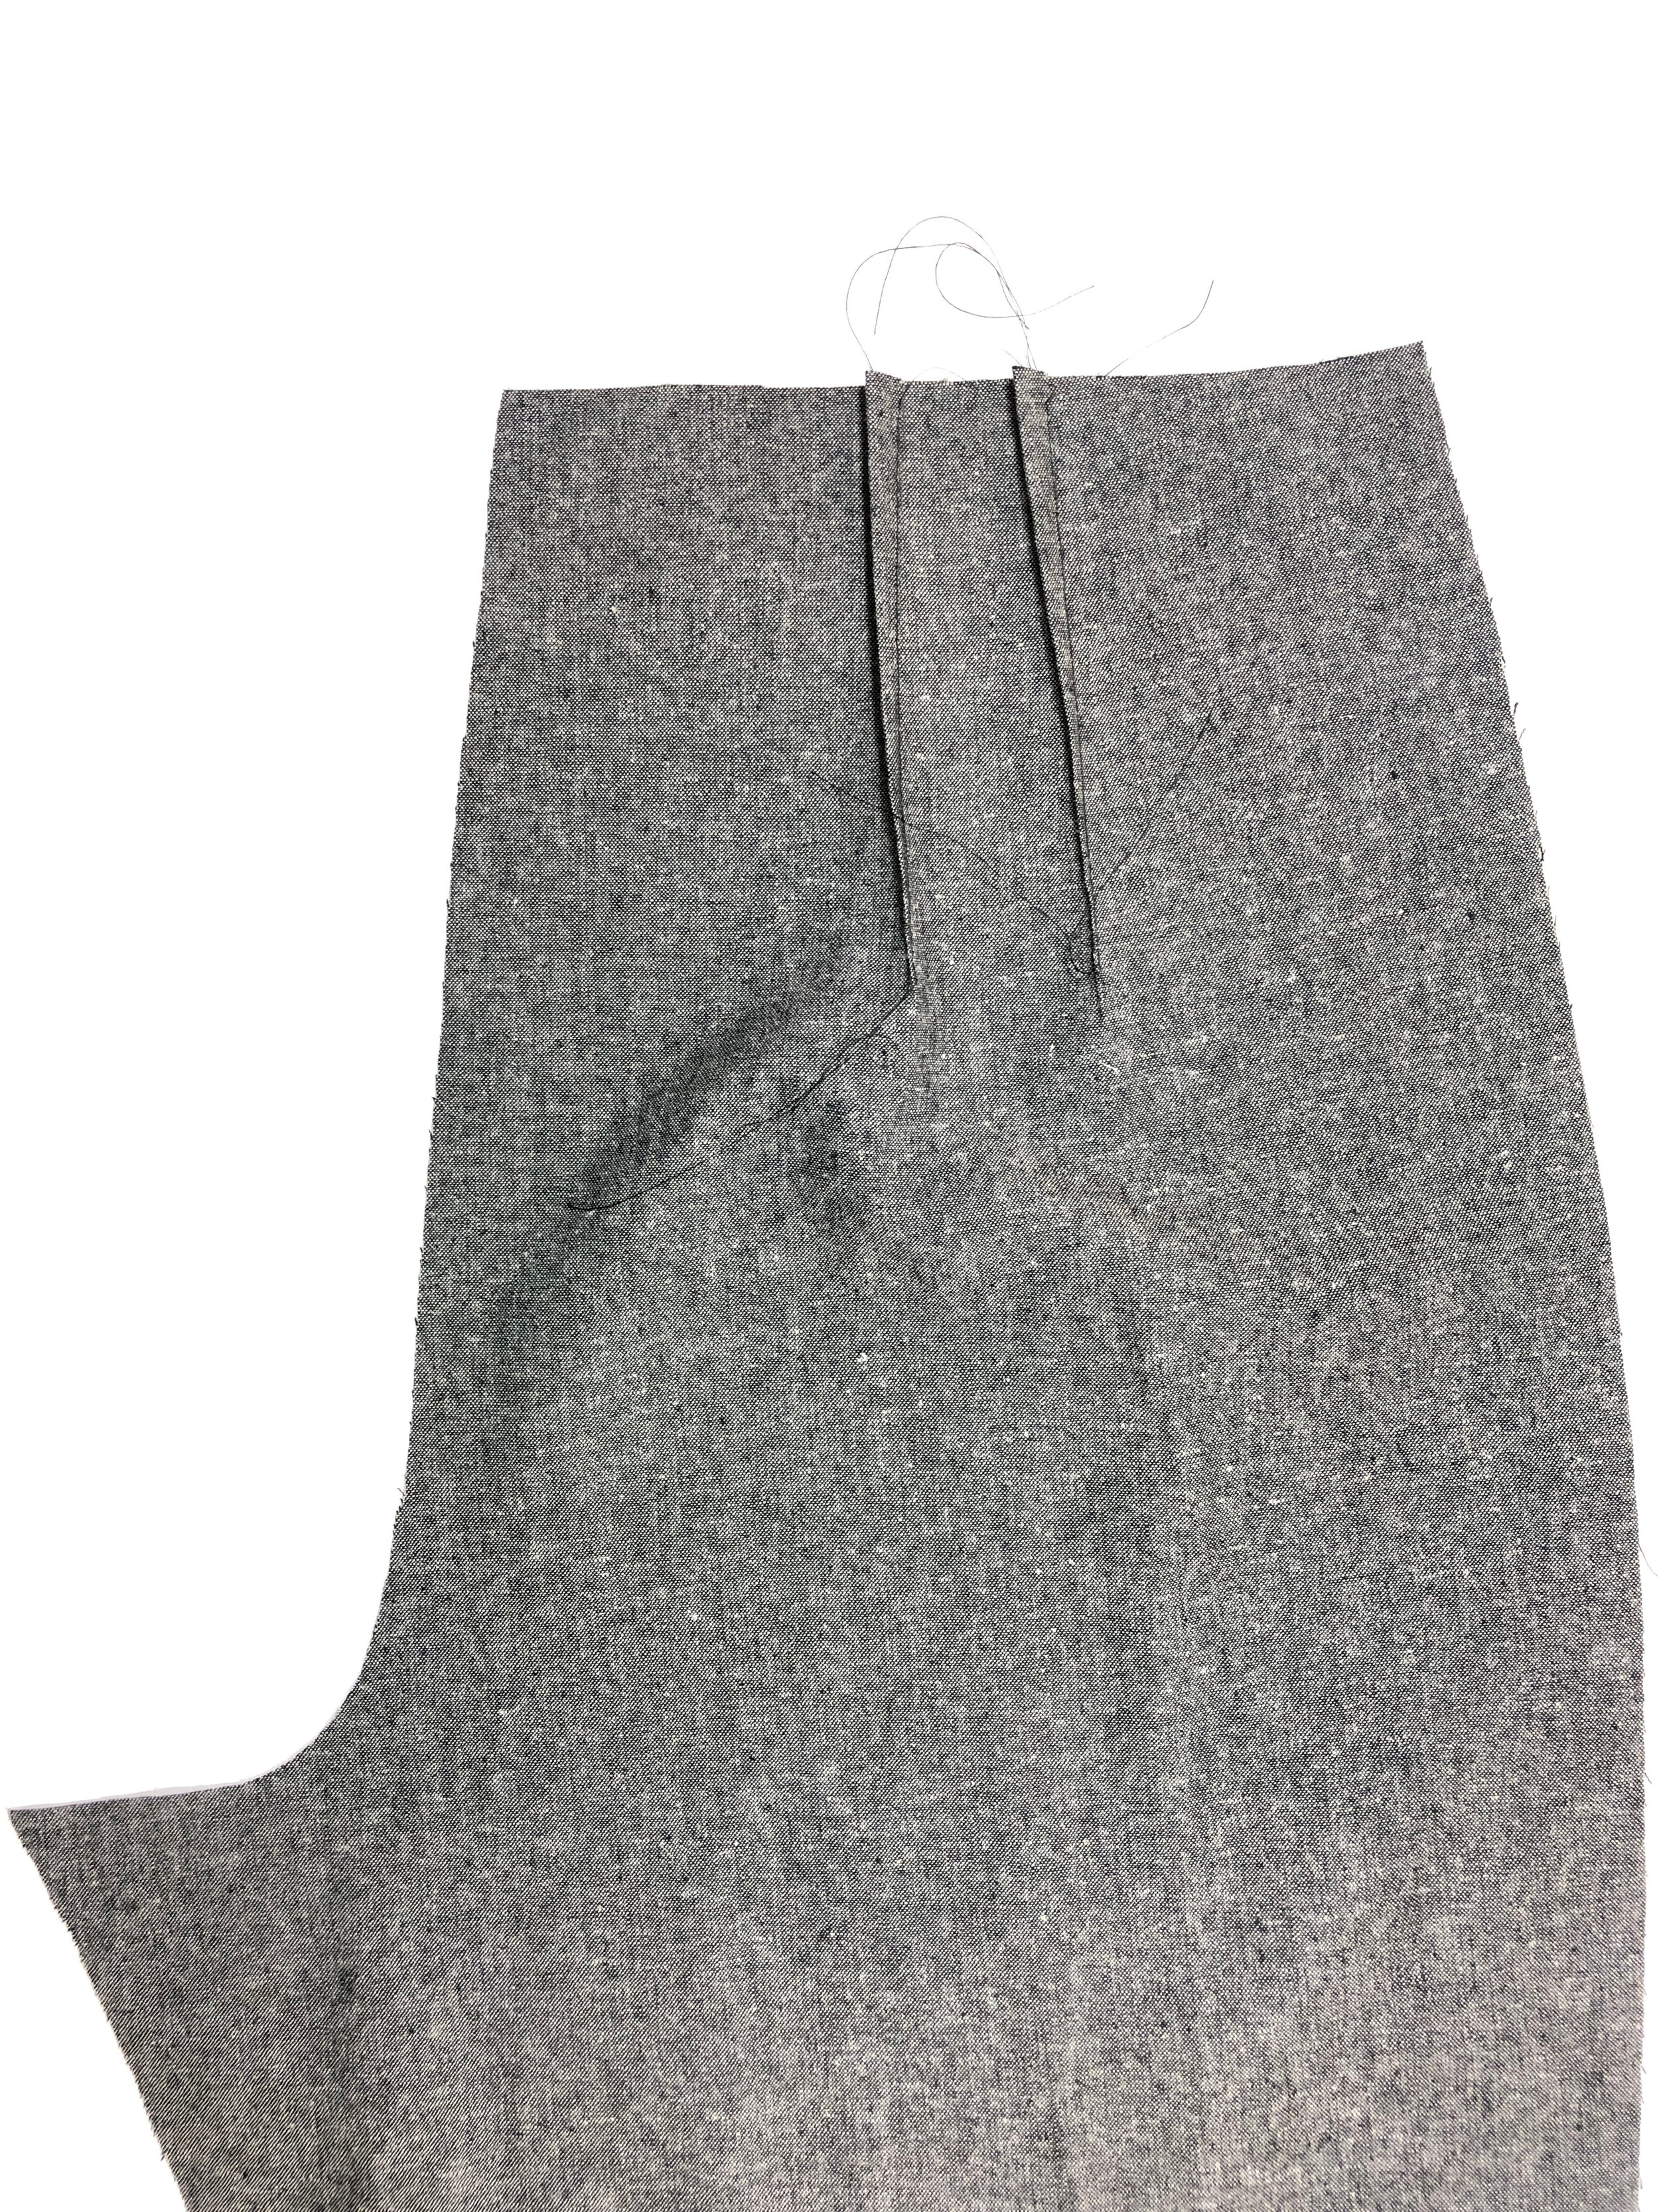 5. Stitch back pant darts from notches to dot mark, and press toward center back.